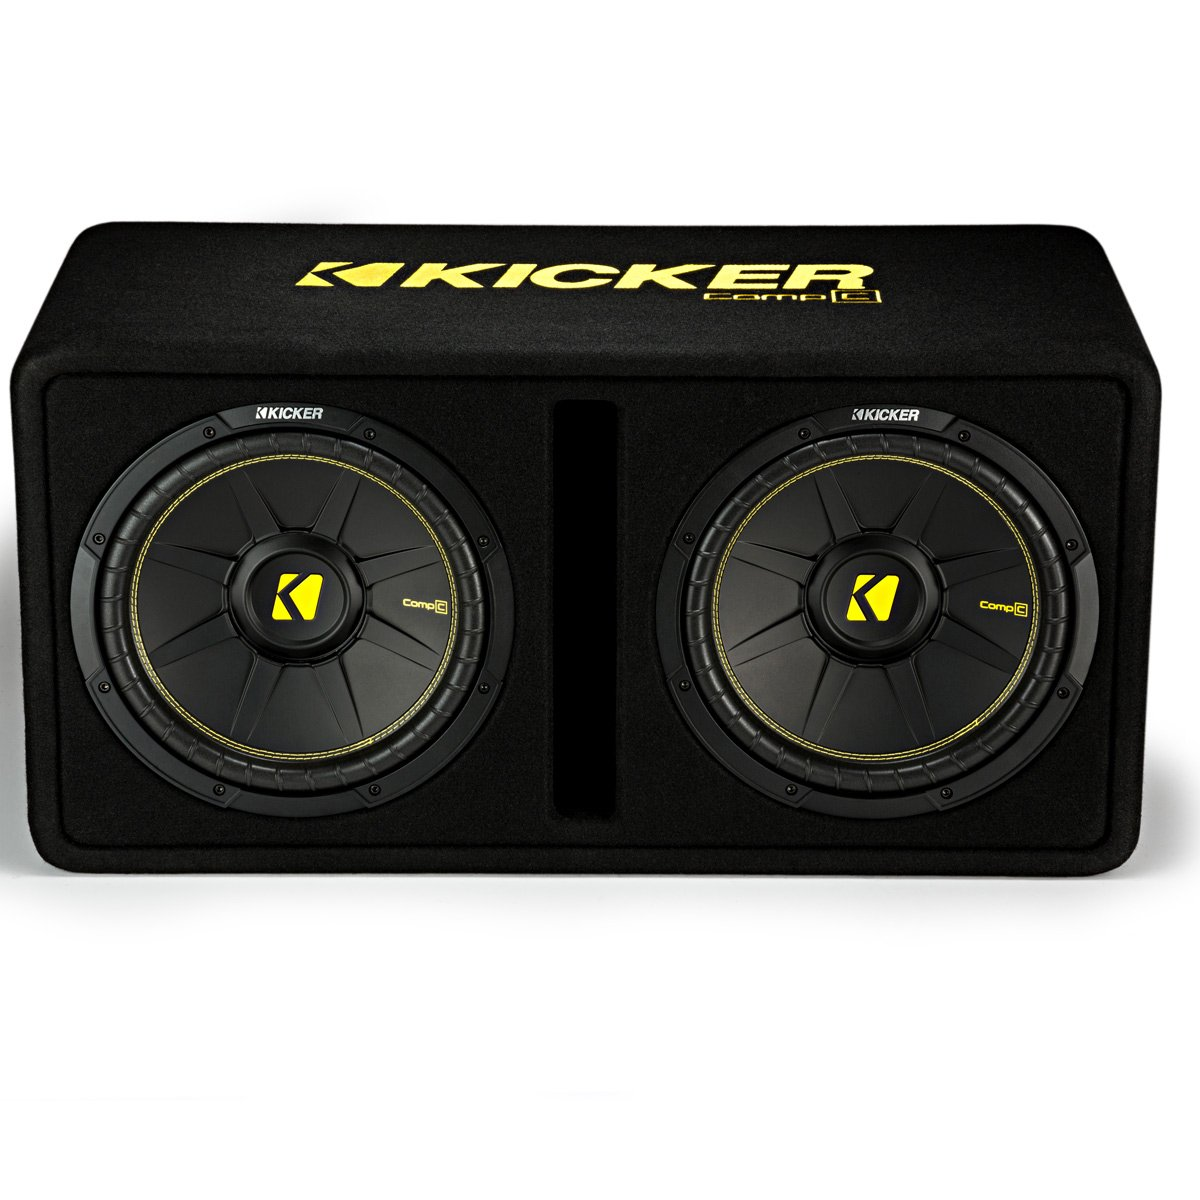 Kicker Dual 12-Inch 1200 Watt 2 Ohm Vented Loaded Subwoofer Enclosure, 44DCWC122 by Kicker (Image #1)